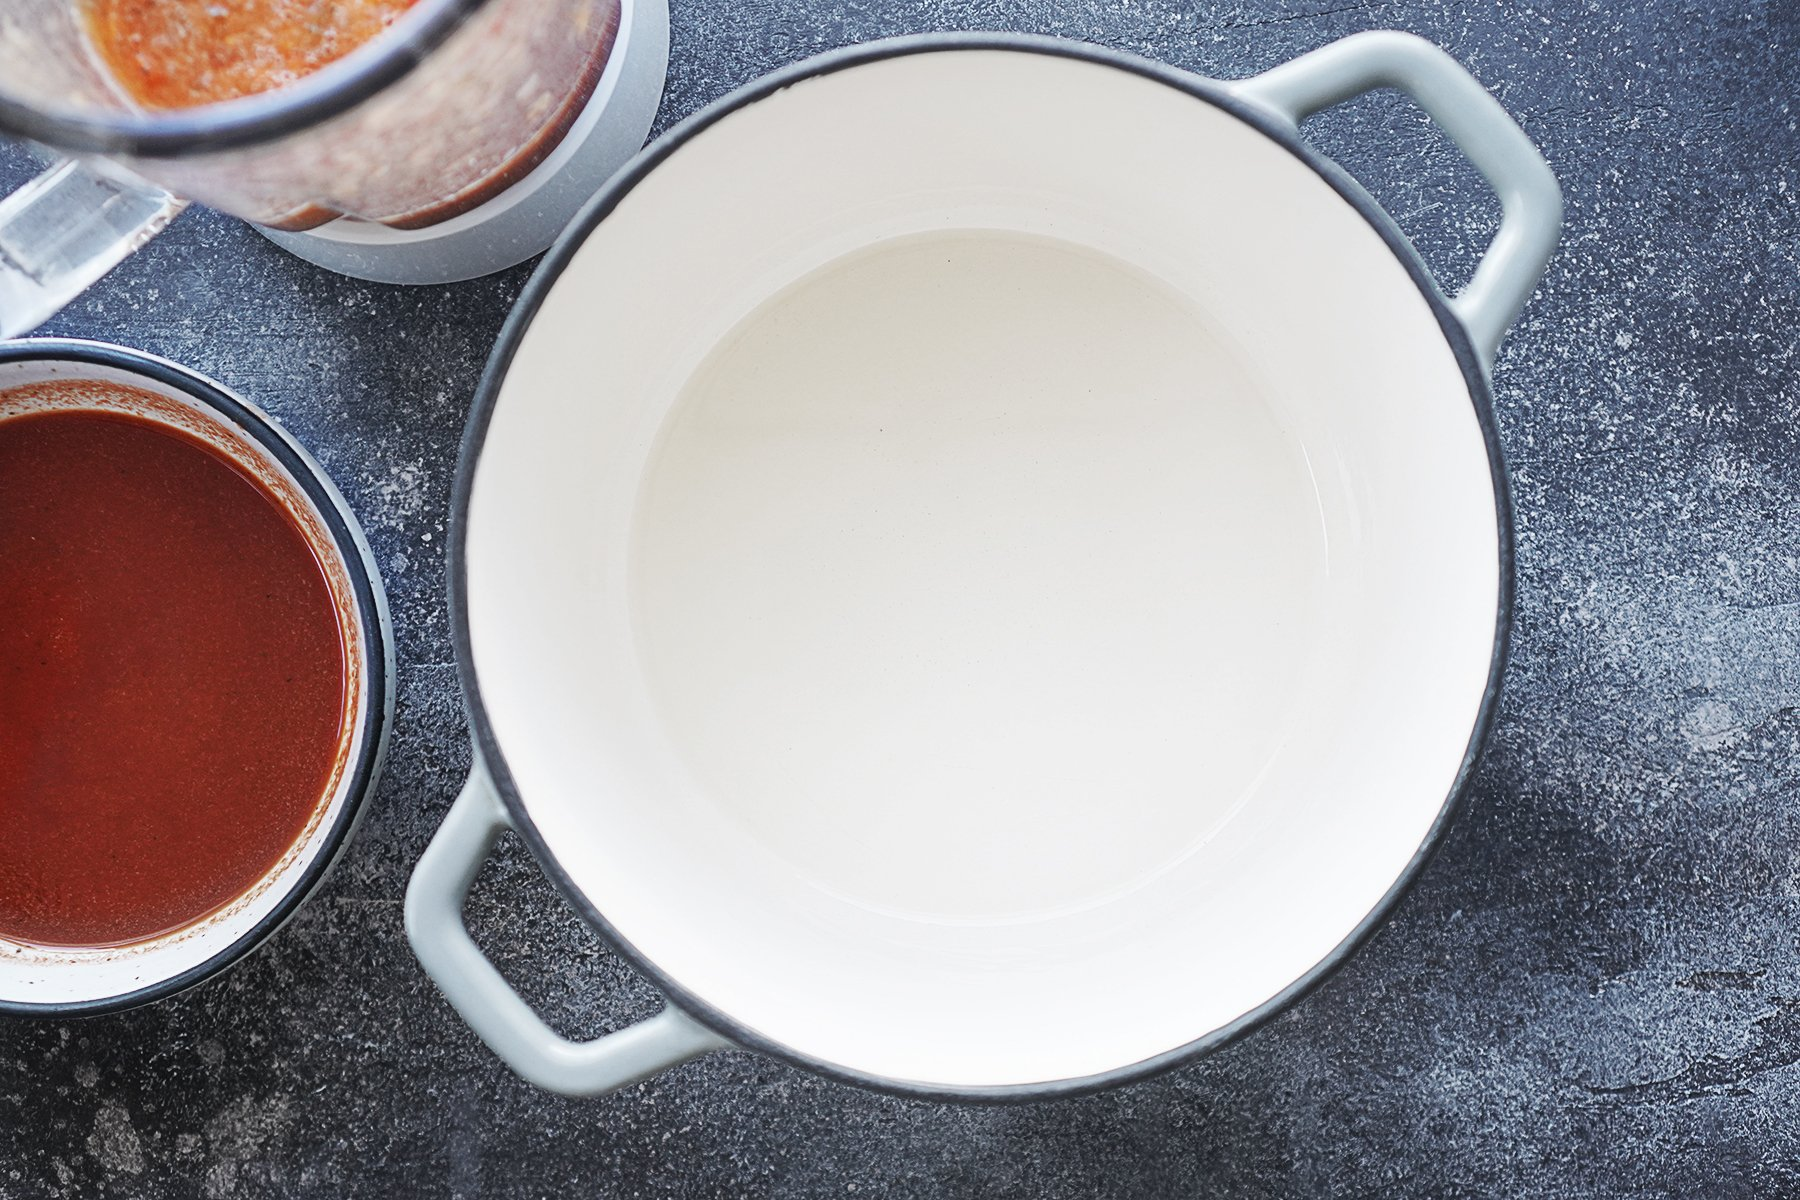 A white saucepan with sauces on the side to cook